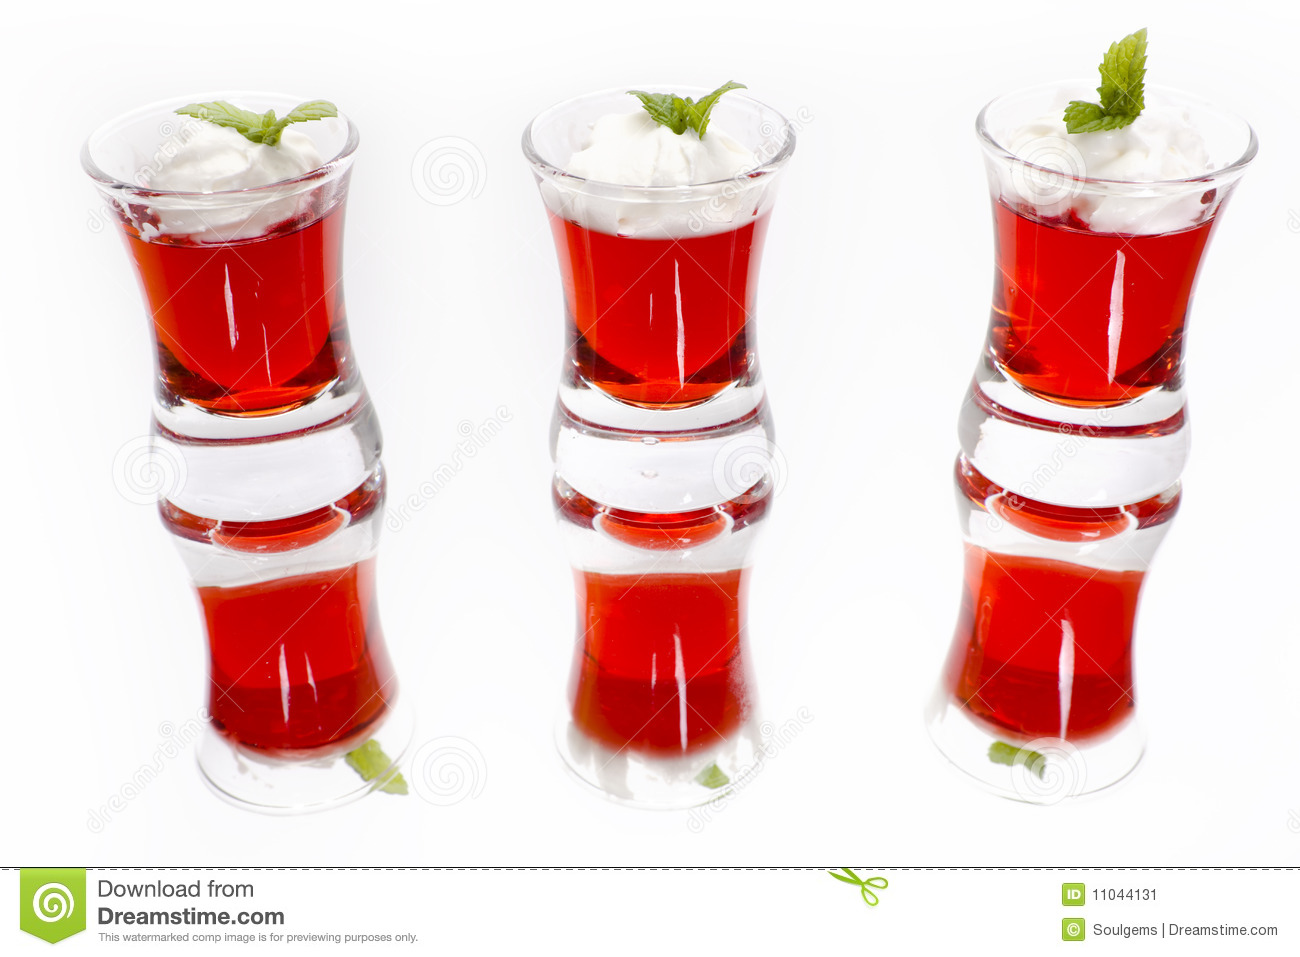 Red Fruit Jelly Desserts